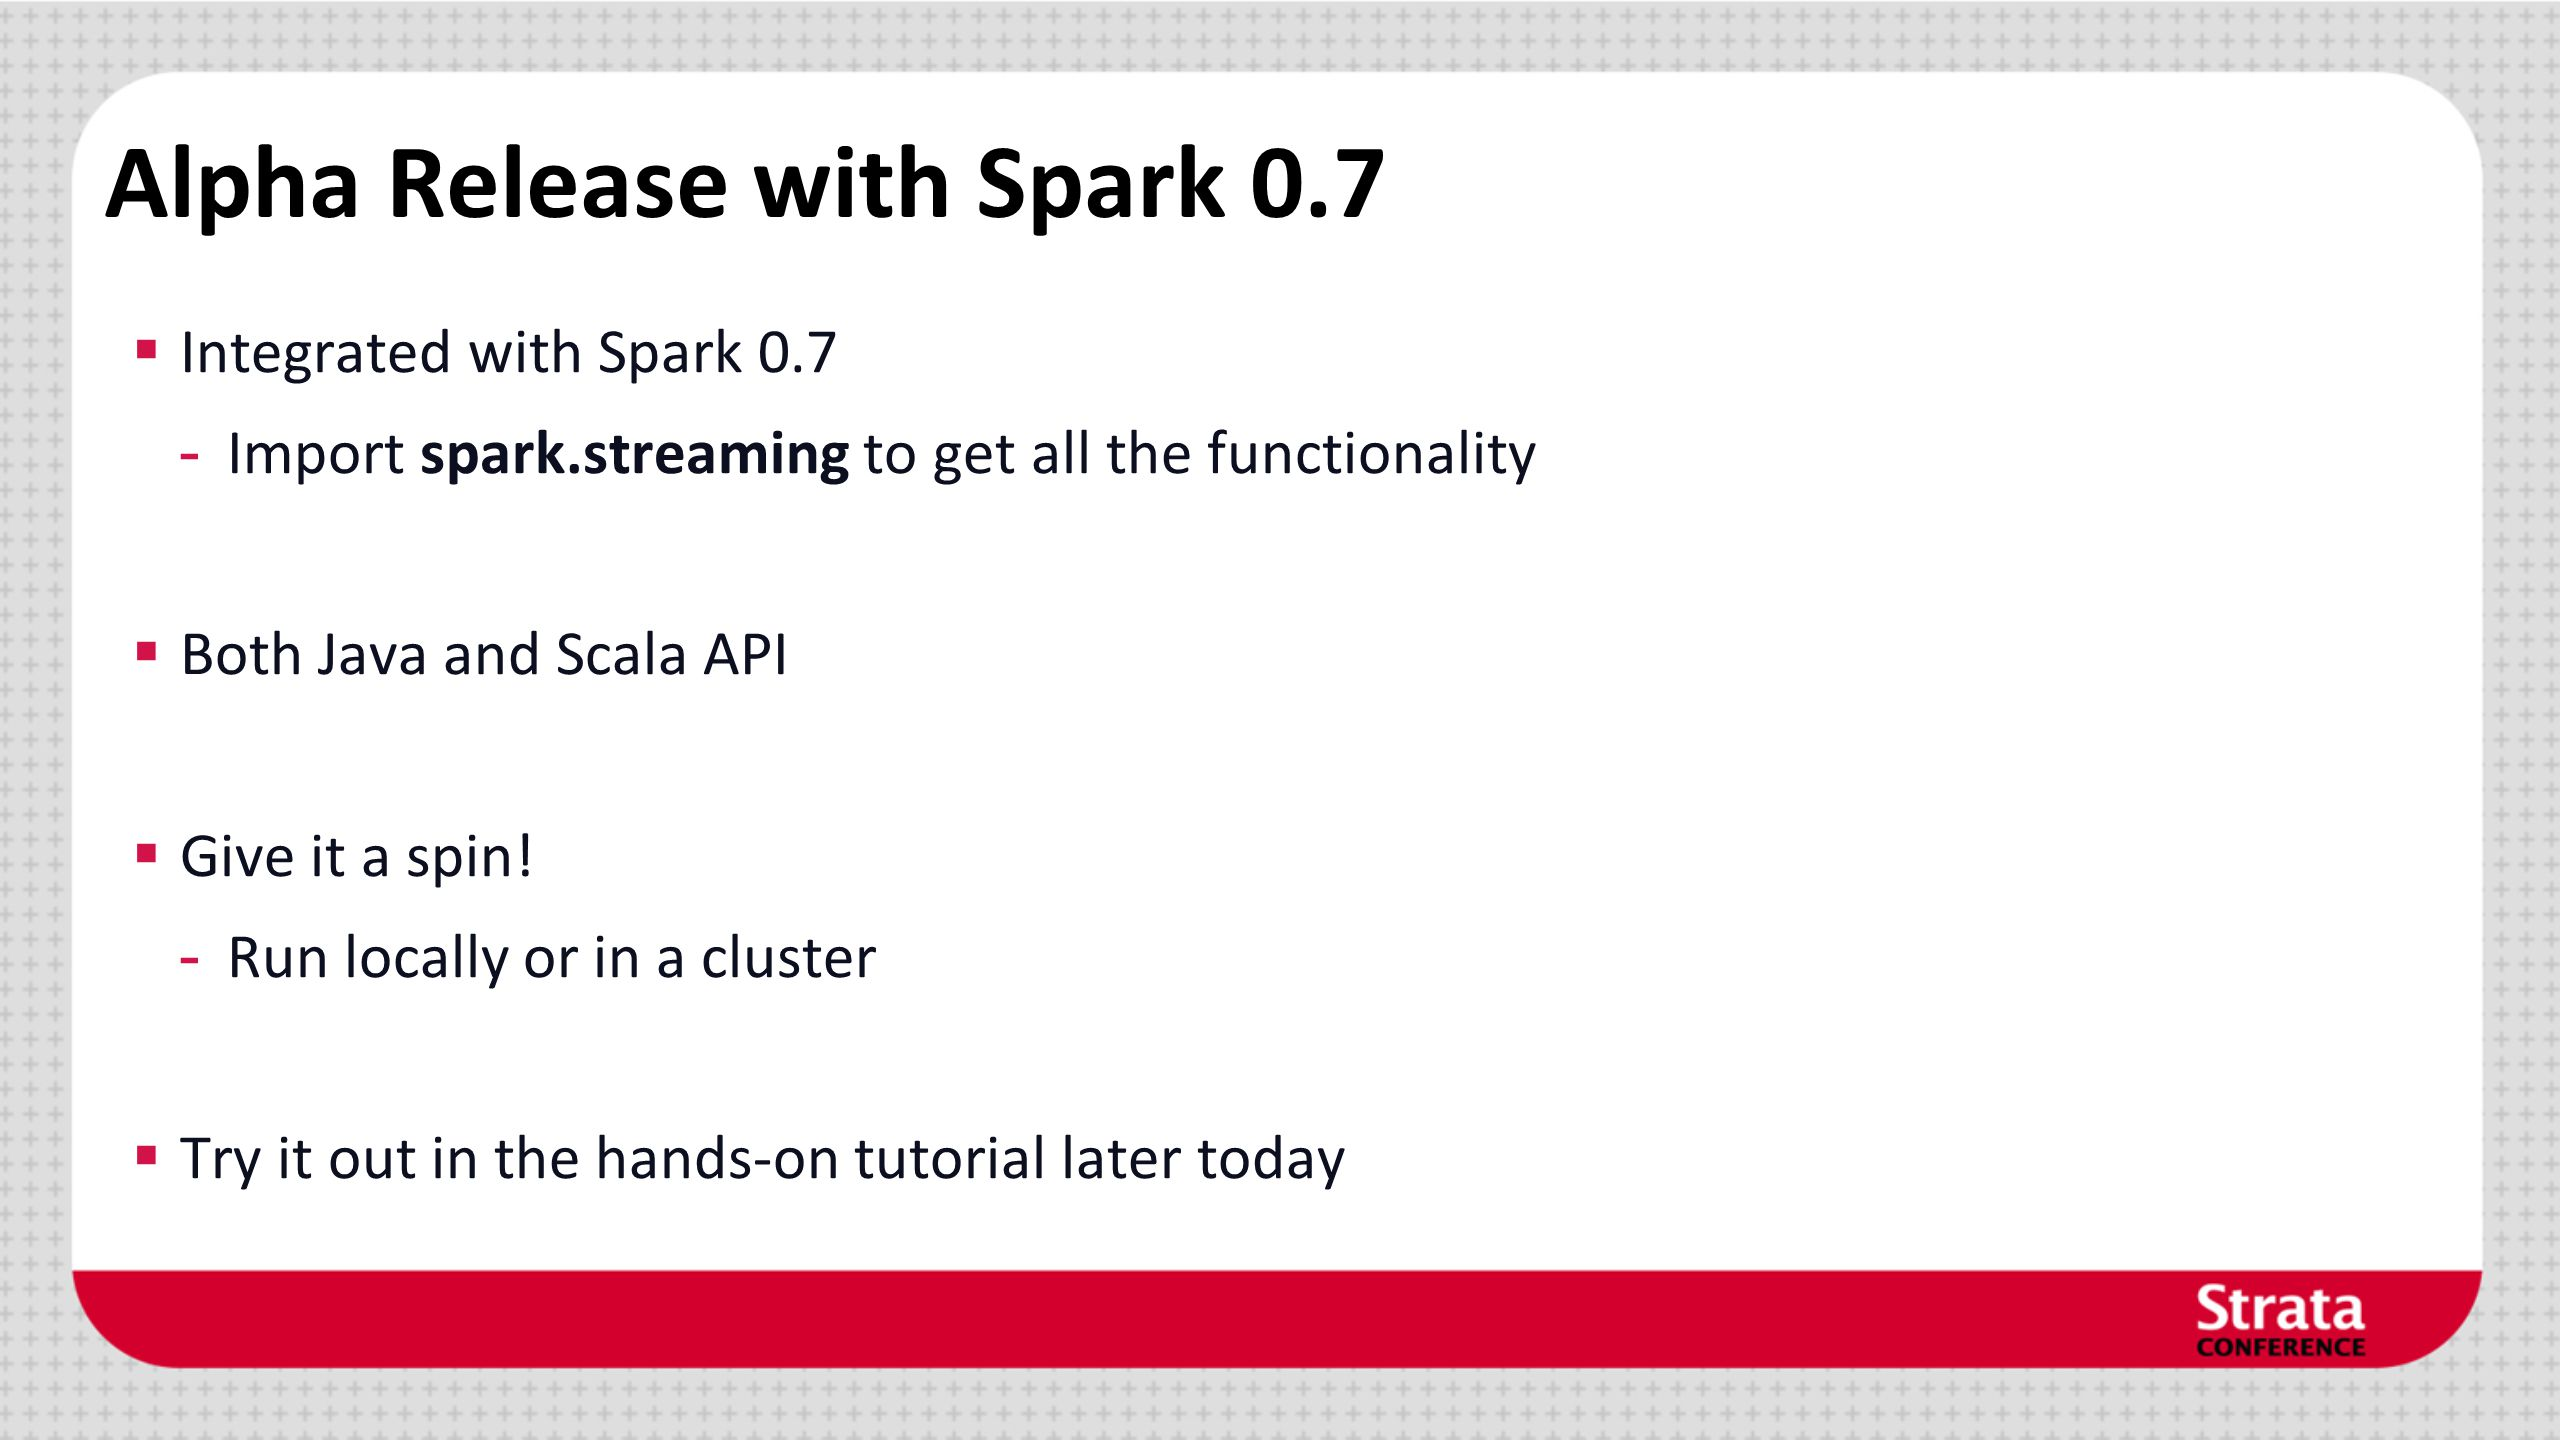 Alpha Release with Spark 0.7